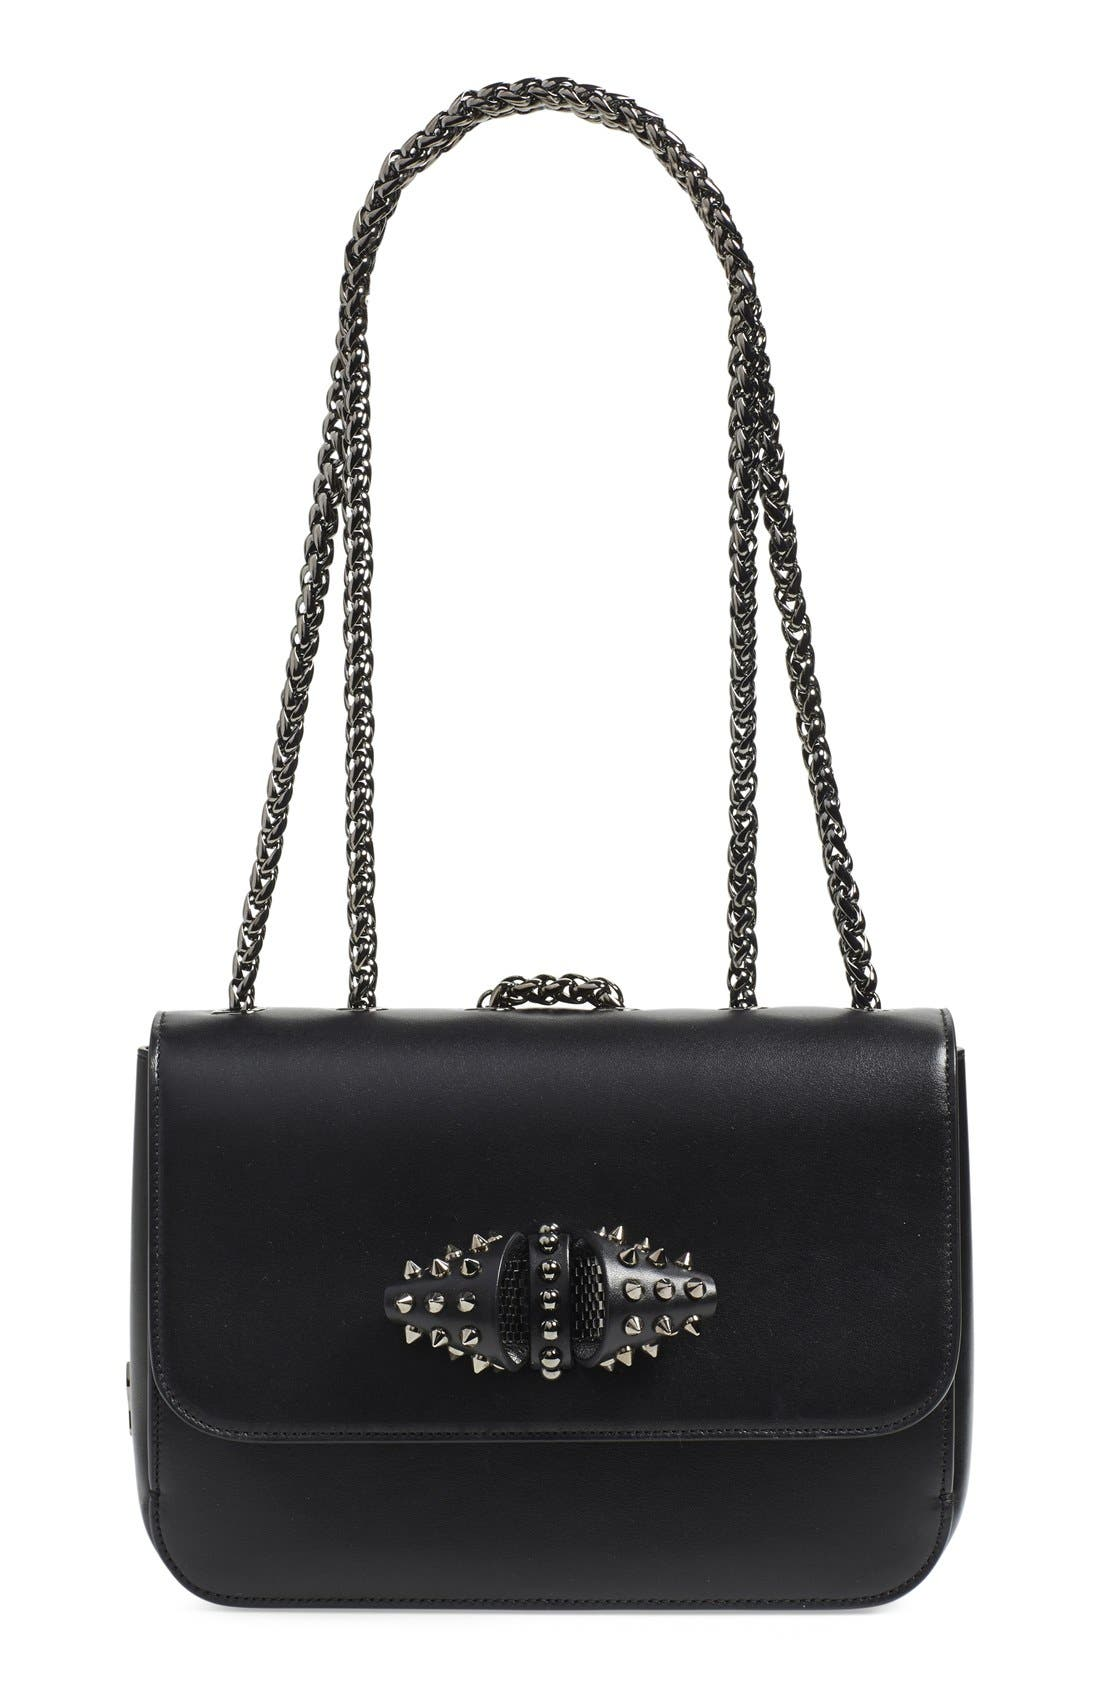 Main Image - Christian Louboutin 'Small Sweet Charity' Spiked Bow Flap Shoulder Bag